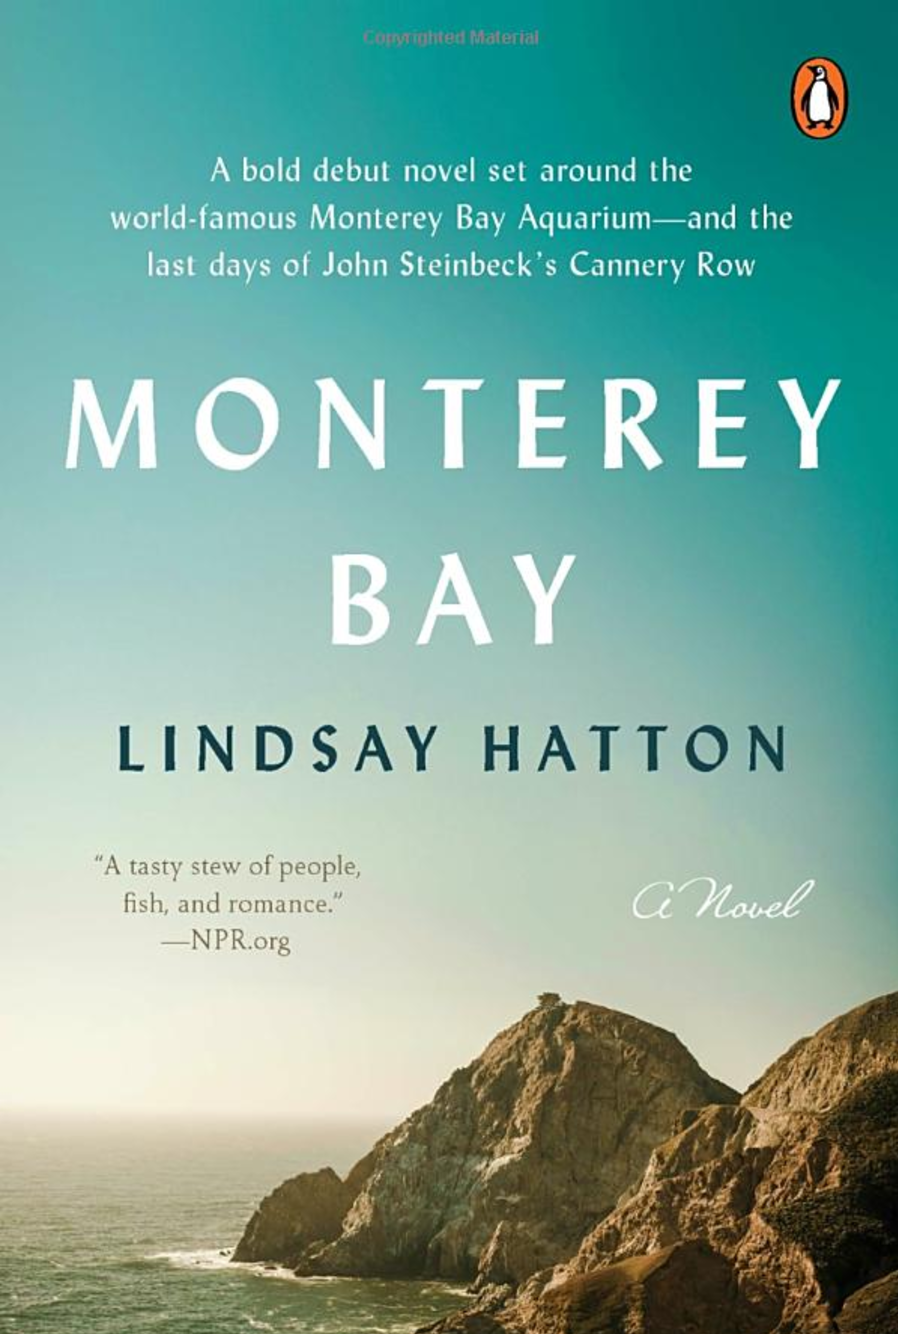 Lindsay Hatton - Reviews